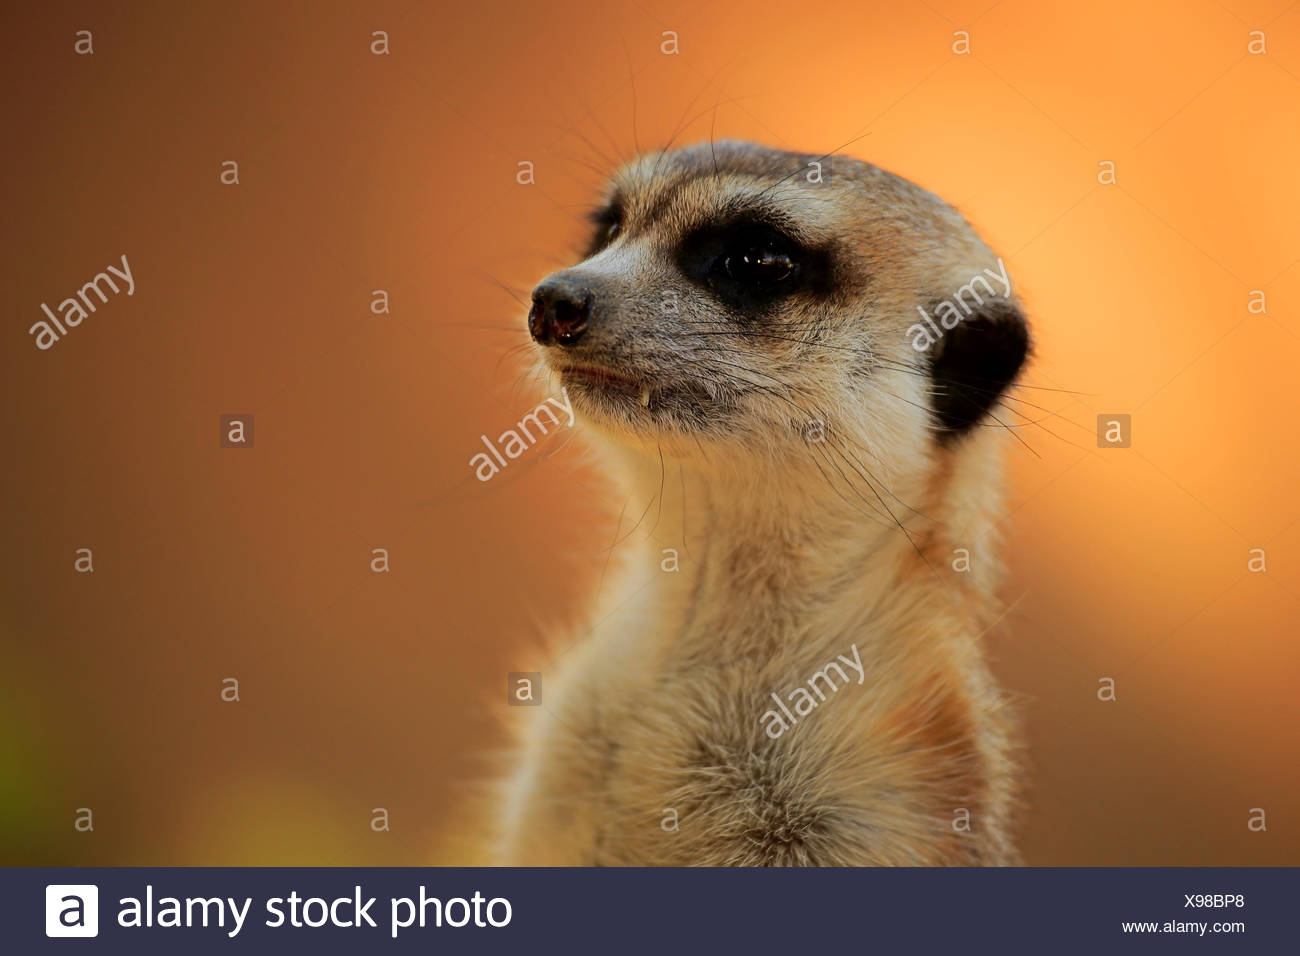 Suricate, taking sunbath in morning hours to warm up, Tswalu Game Reserve, Kalahari, Northern Cape, South Africa, Africa / - Stock Image